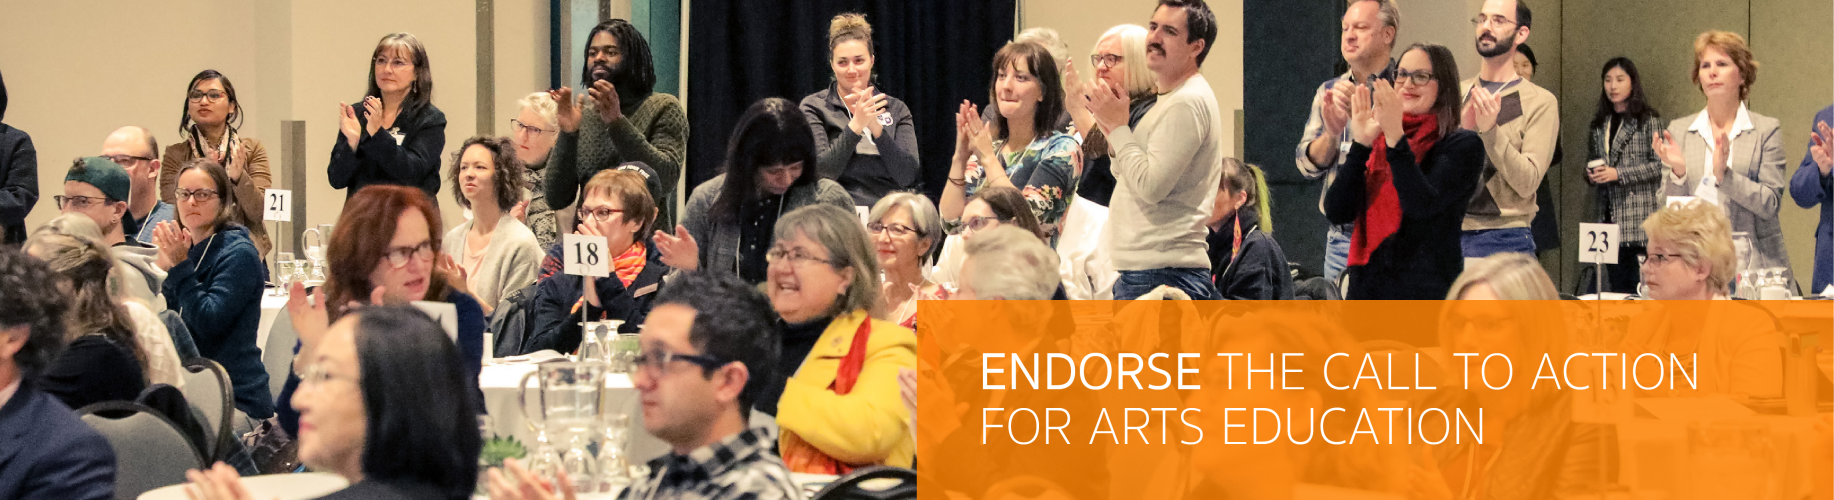 Endorse the Call to Action for Arts Education